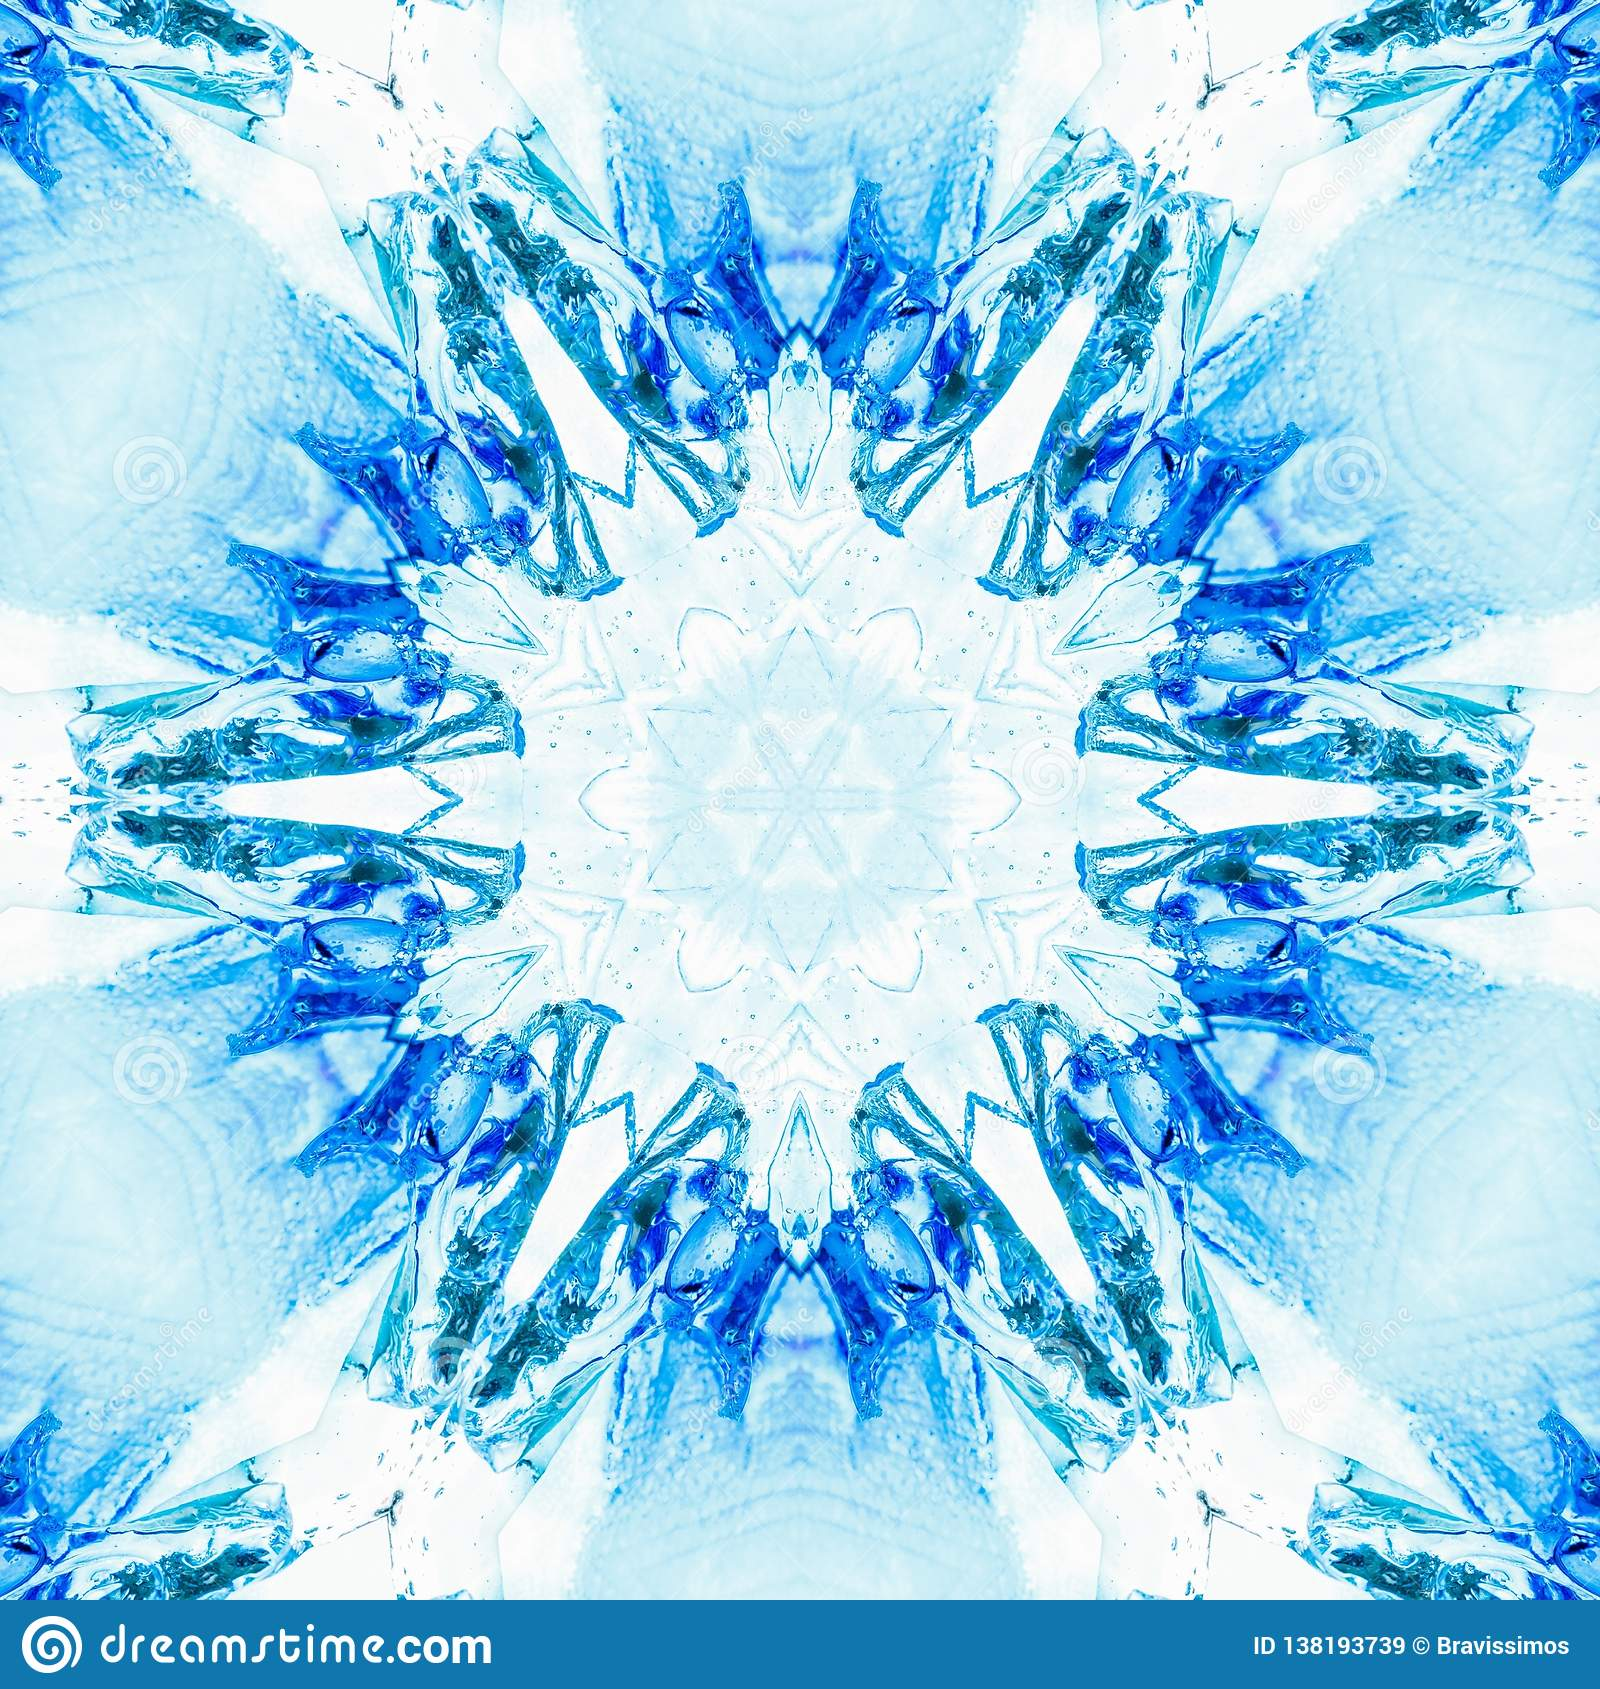 Abstract Blue Ice Pattern Symmetry Wallpaper Illustration